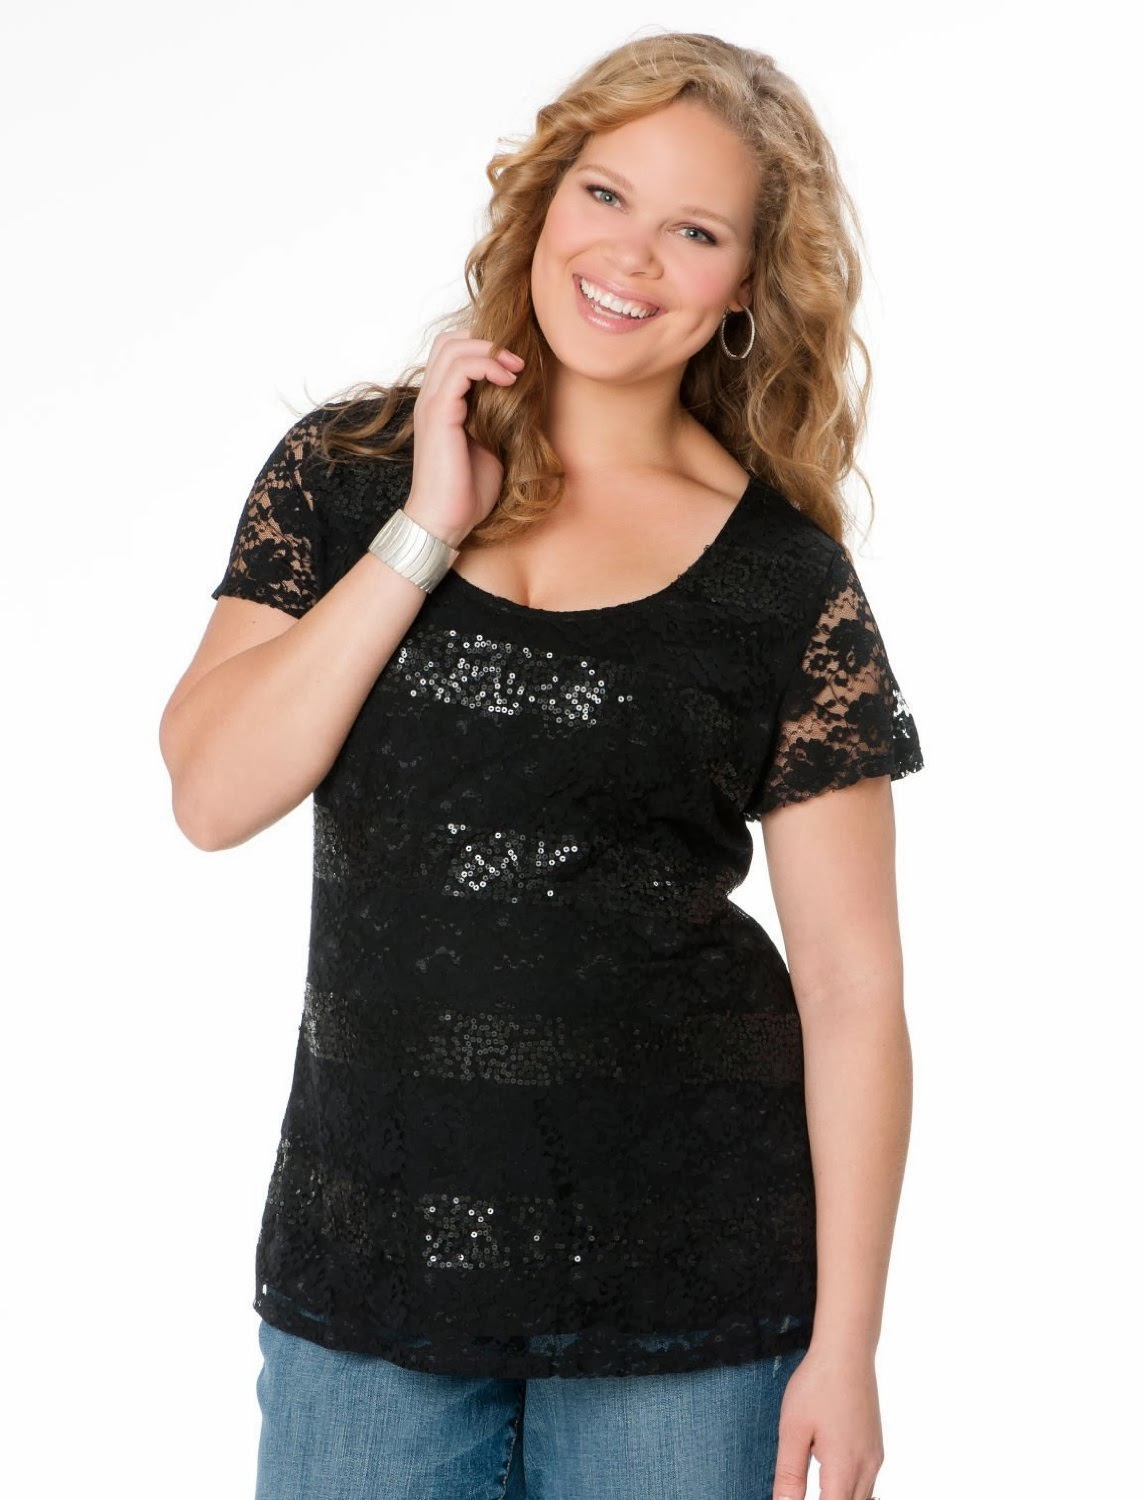 Plus-size Maternity Clothes. Showing 48 of results that match your query. Search Product Result. Product - Maternity Short Sleeve Tee with Flattering Side Ruching-- Available in Plus Size. Best Seller. Product Image. Price $ 8. Product Title. Maternity Short Sleeve Tee with Flattering Side Ruching-- Available in Plus Size.